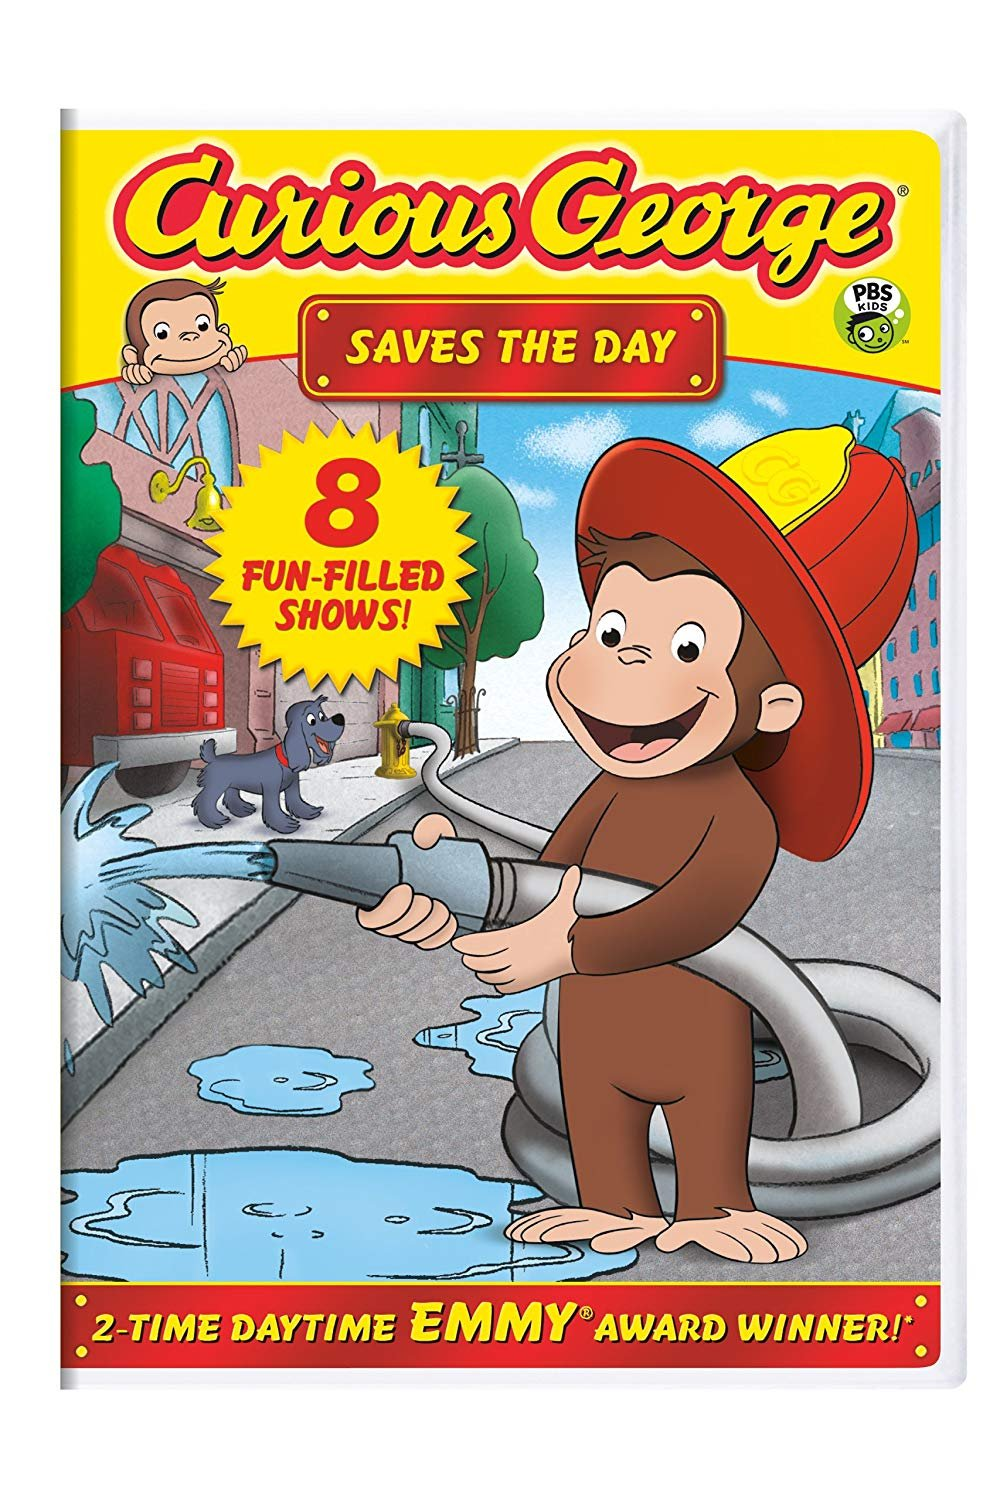 Curious George: Saves the Day  DVD (dv001)